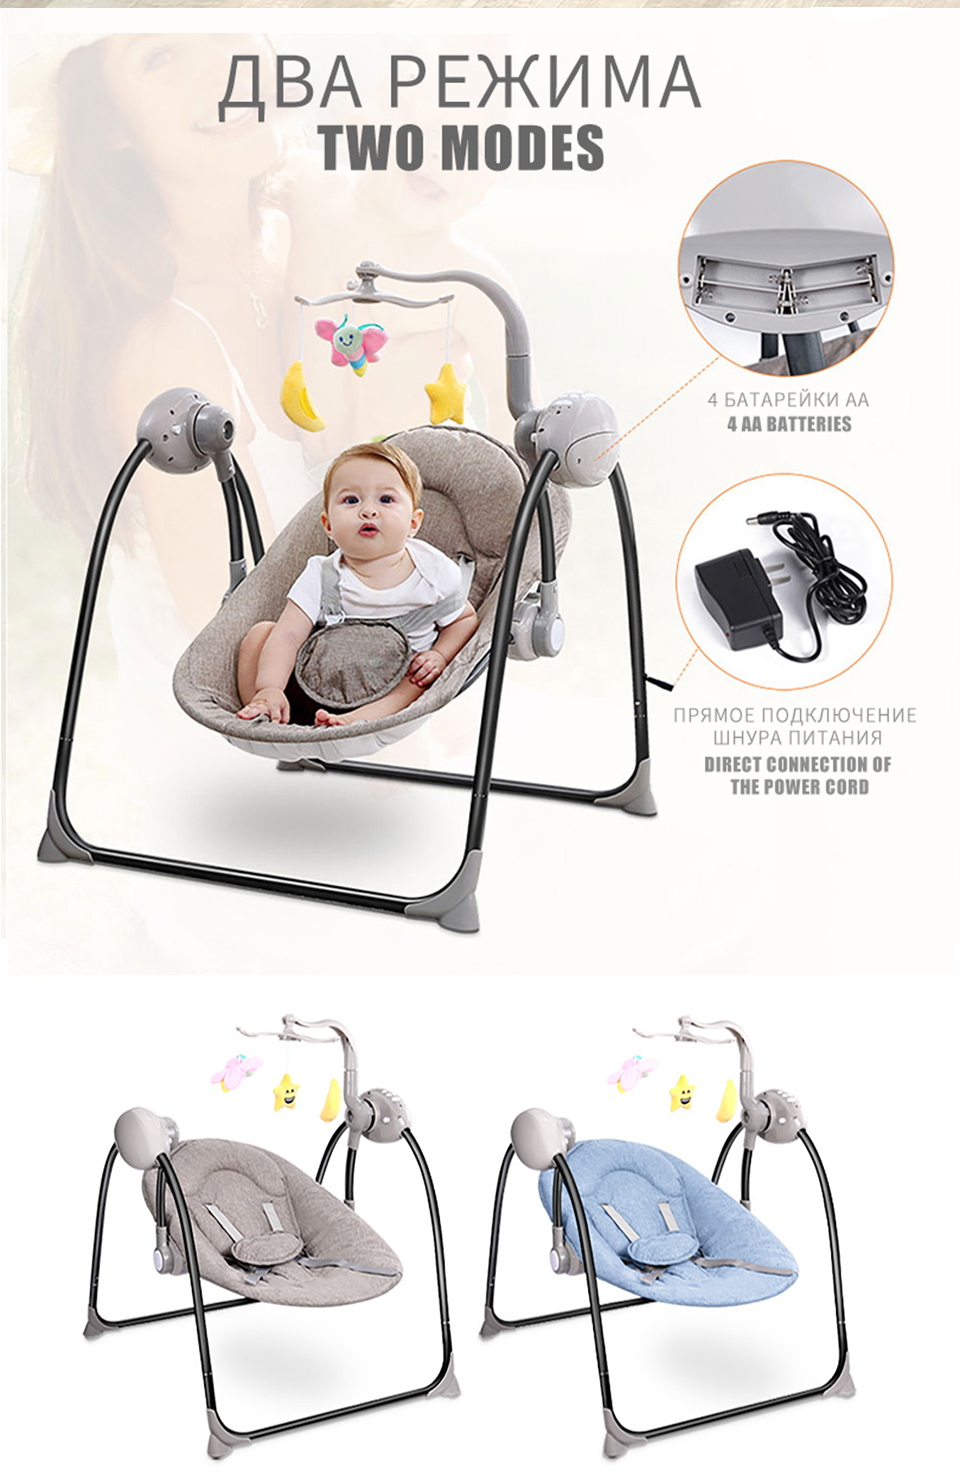 H97078359d7fb4b06970a322fe7296e76A IMBABY Baby Rocking Chair Baby Swing Electric Baby Cradle With Remote Control Cradle  Rocking Chair For Newborns Swing Chair